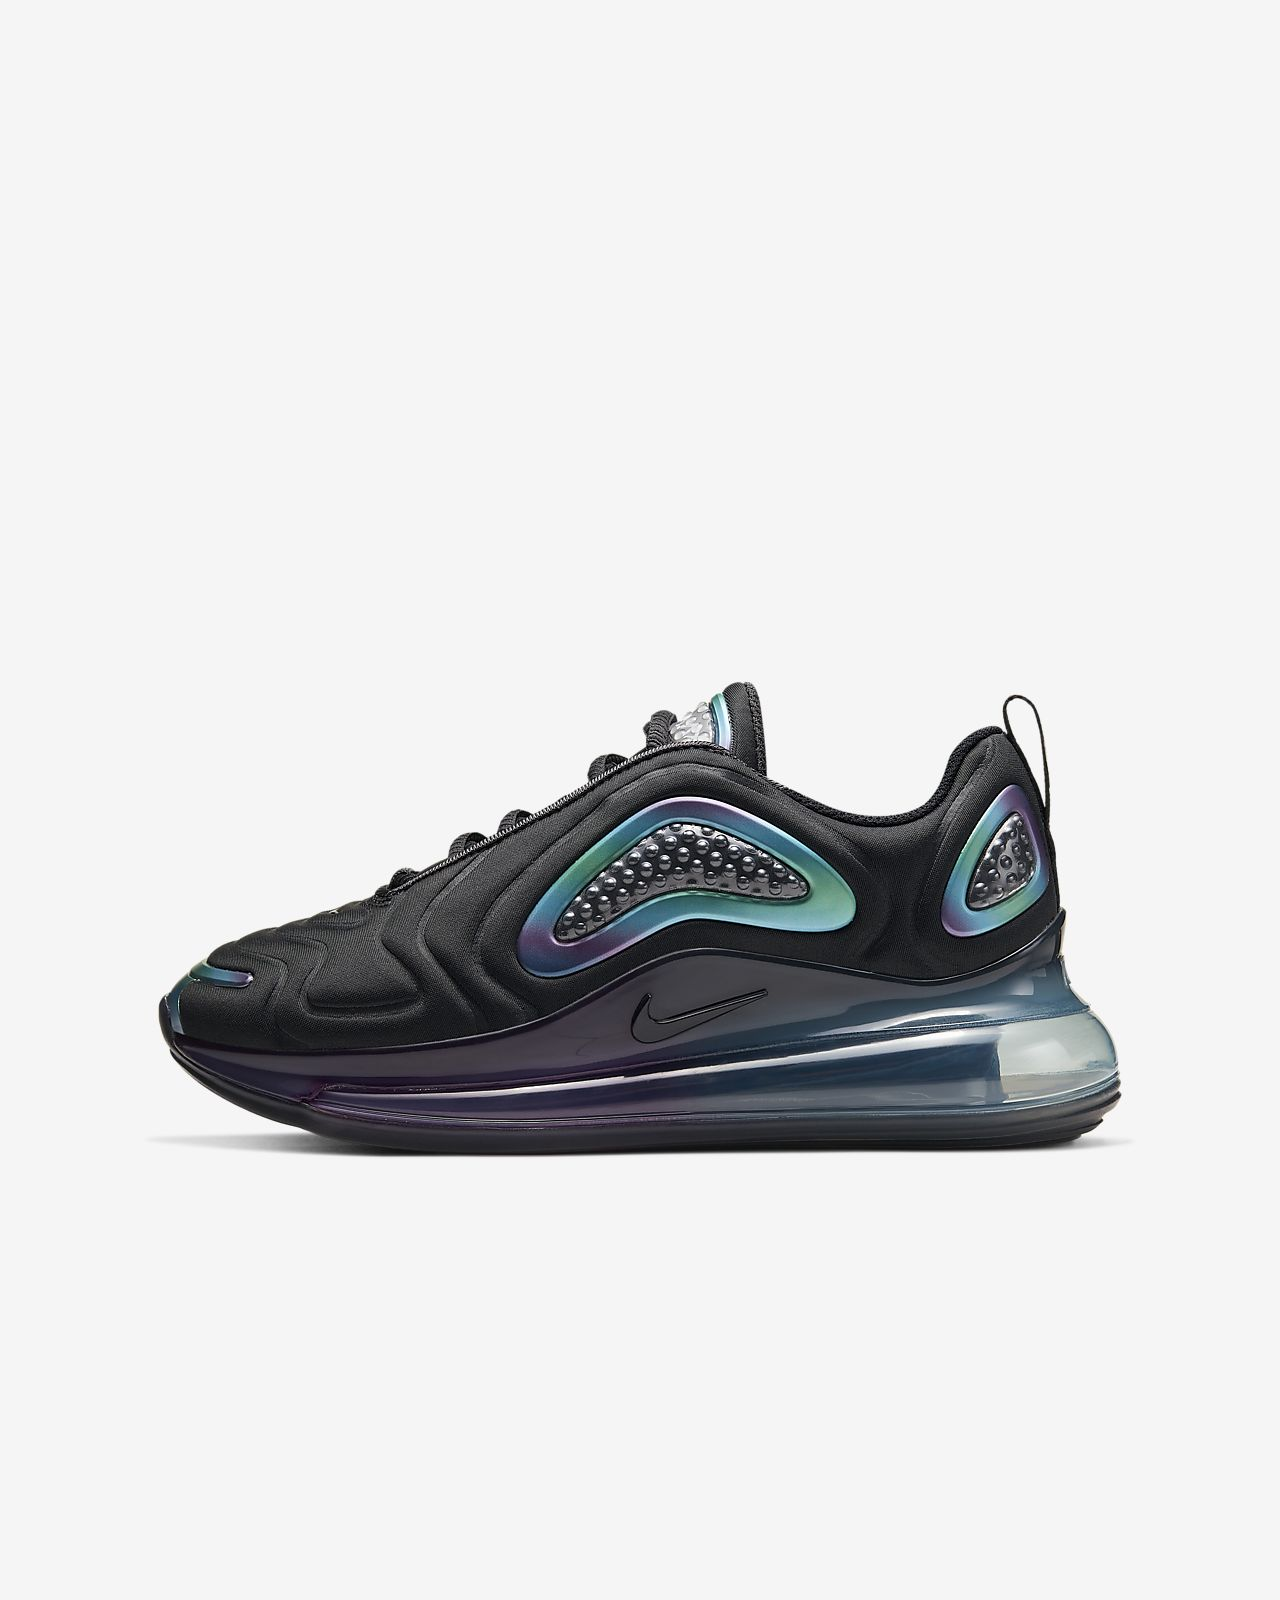 NikeLab Aqua Sock 360 QS Men's Shoe